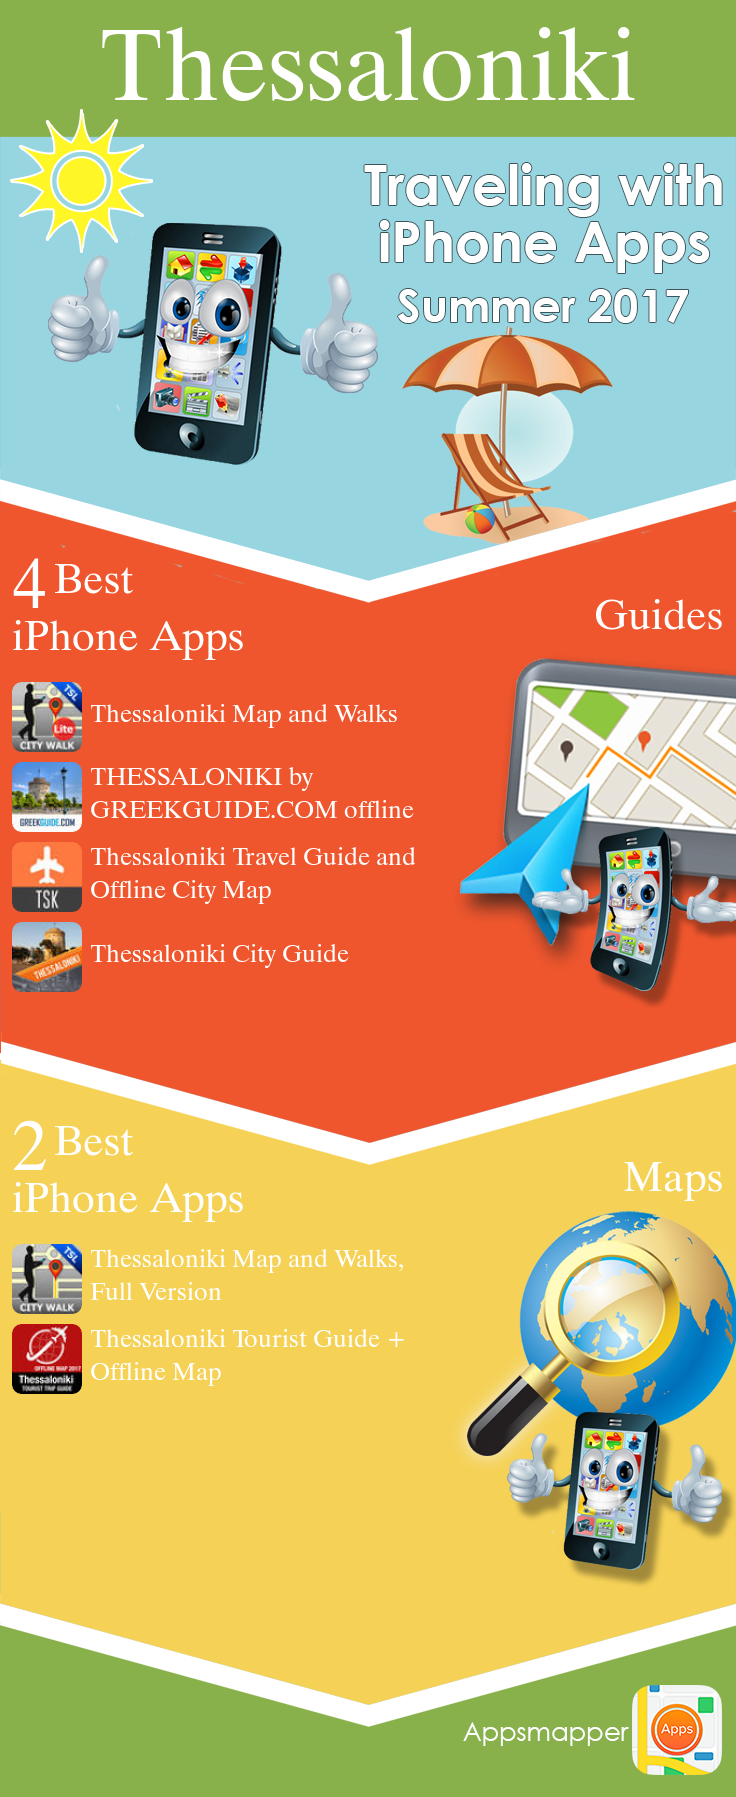 Thessaloniki iPhone apps Travel Guides Maps Transportation